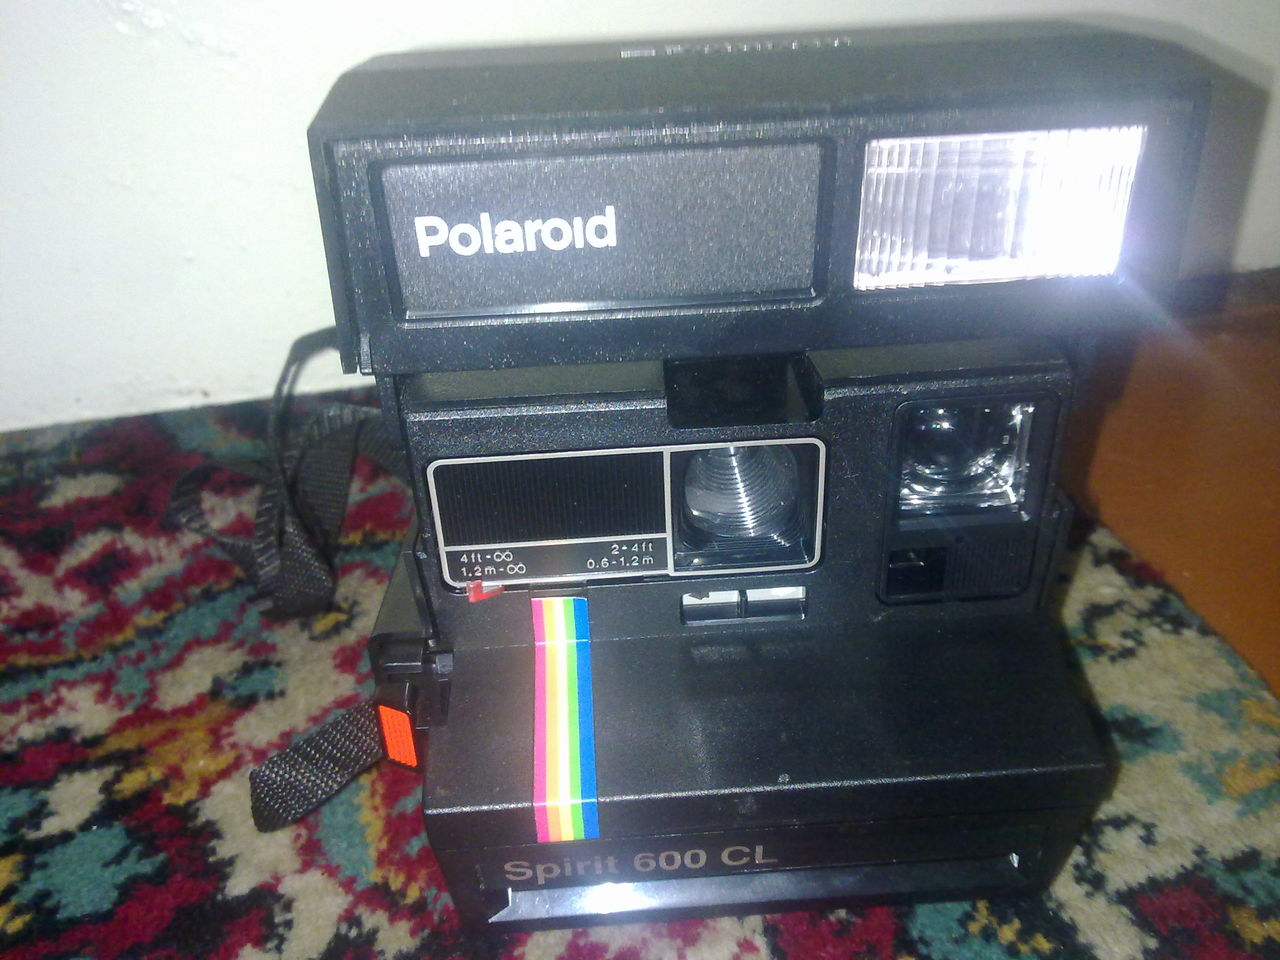 polaroid vs kodak Find great deals on ebay for kodak polaroid camera and kodak colorburst camera shop with confidence.